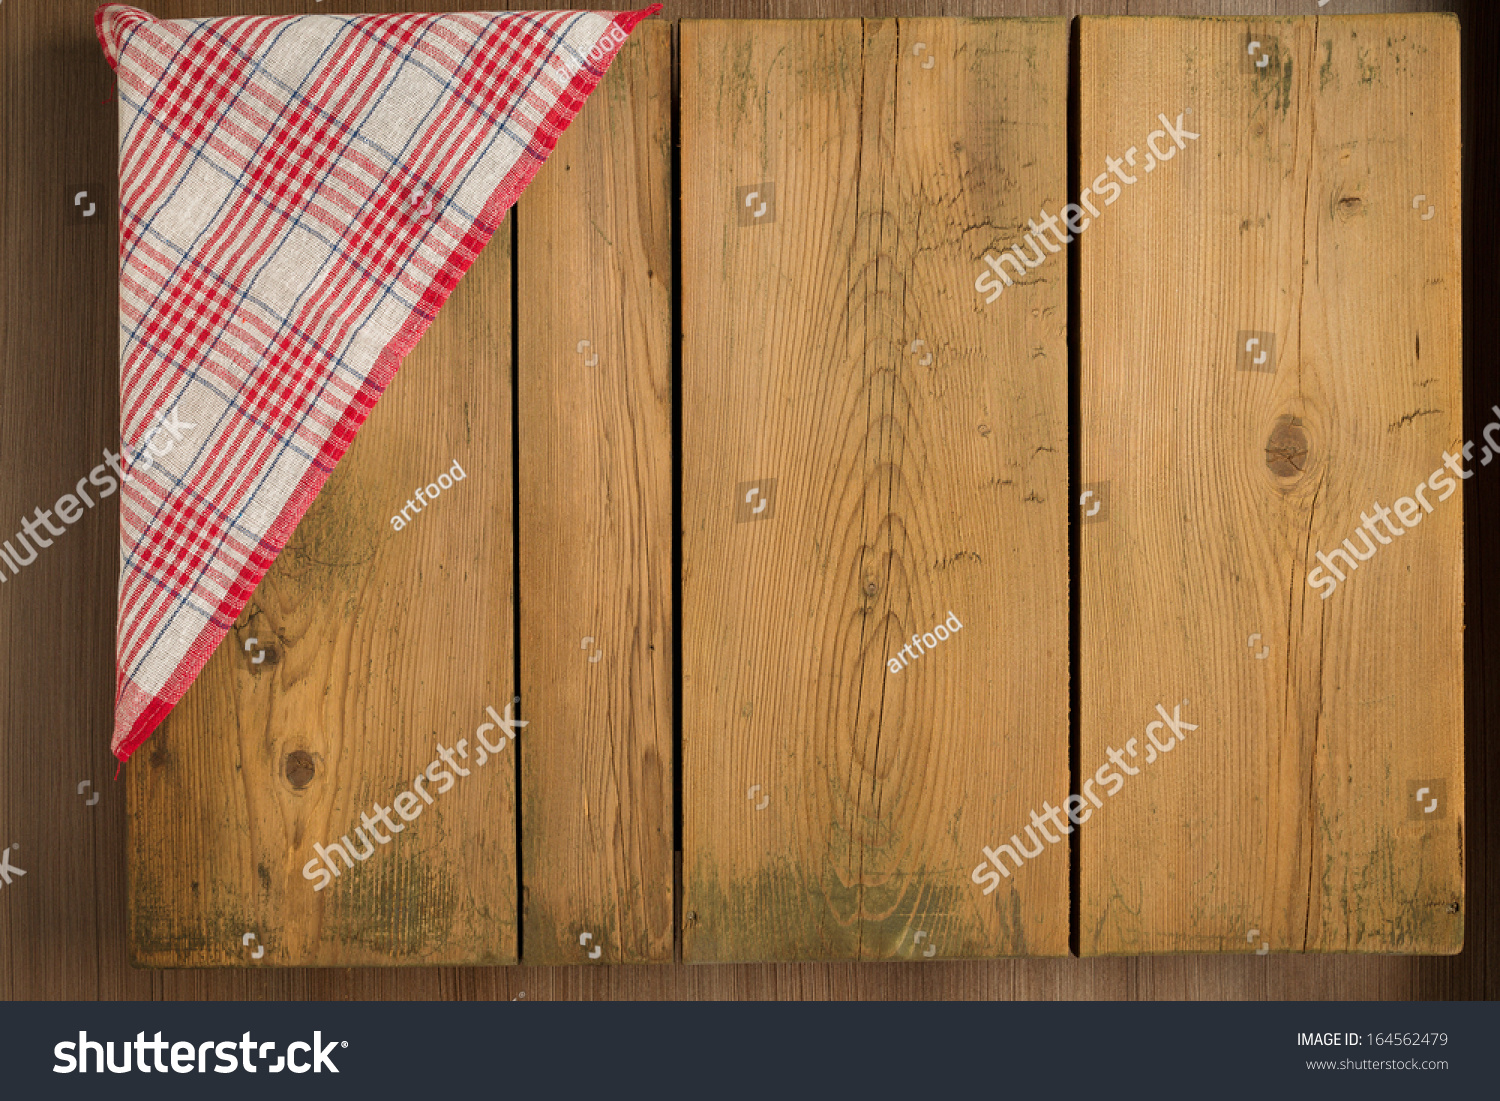 Picnic Table Background picnic table wood background